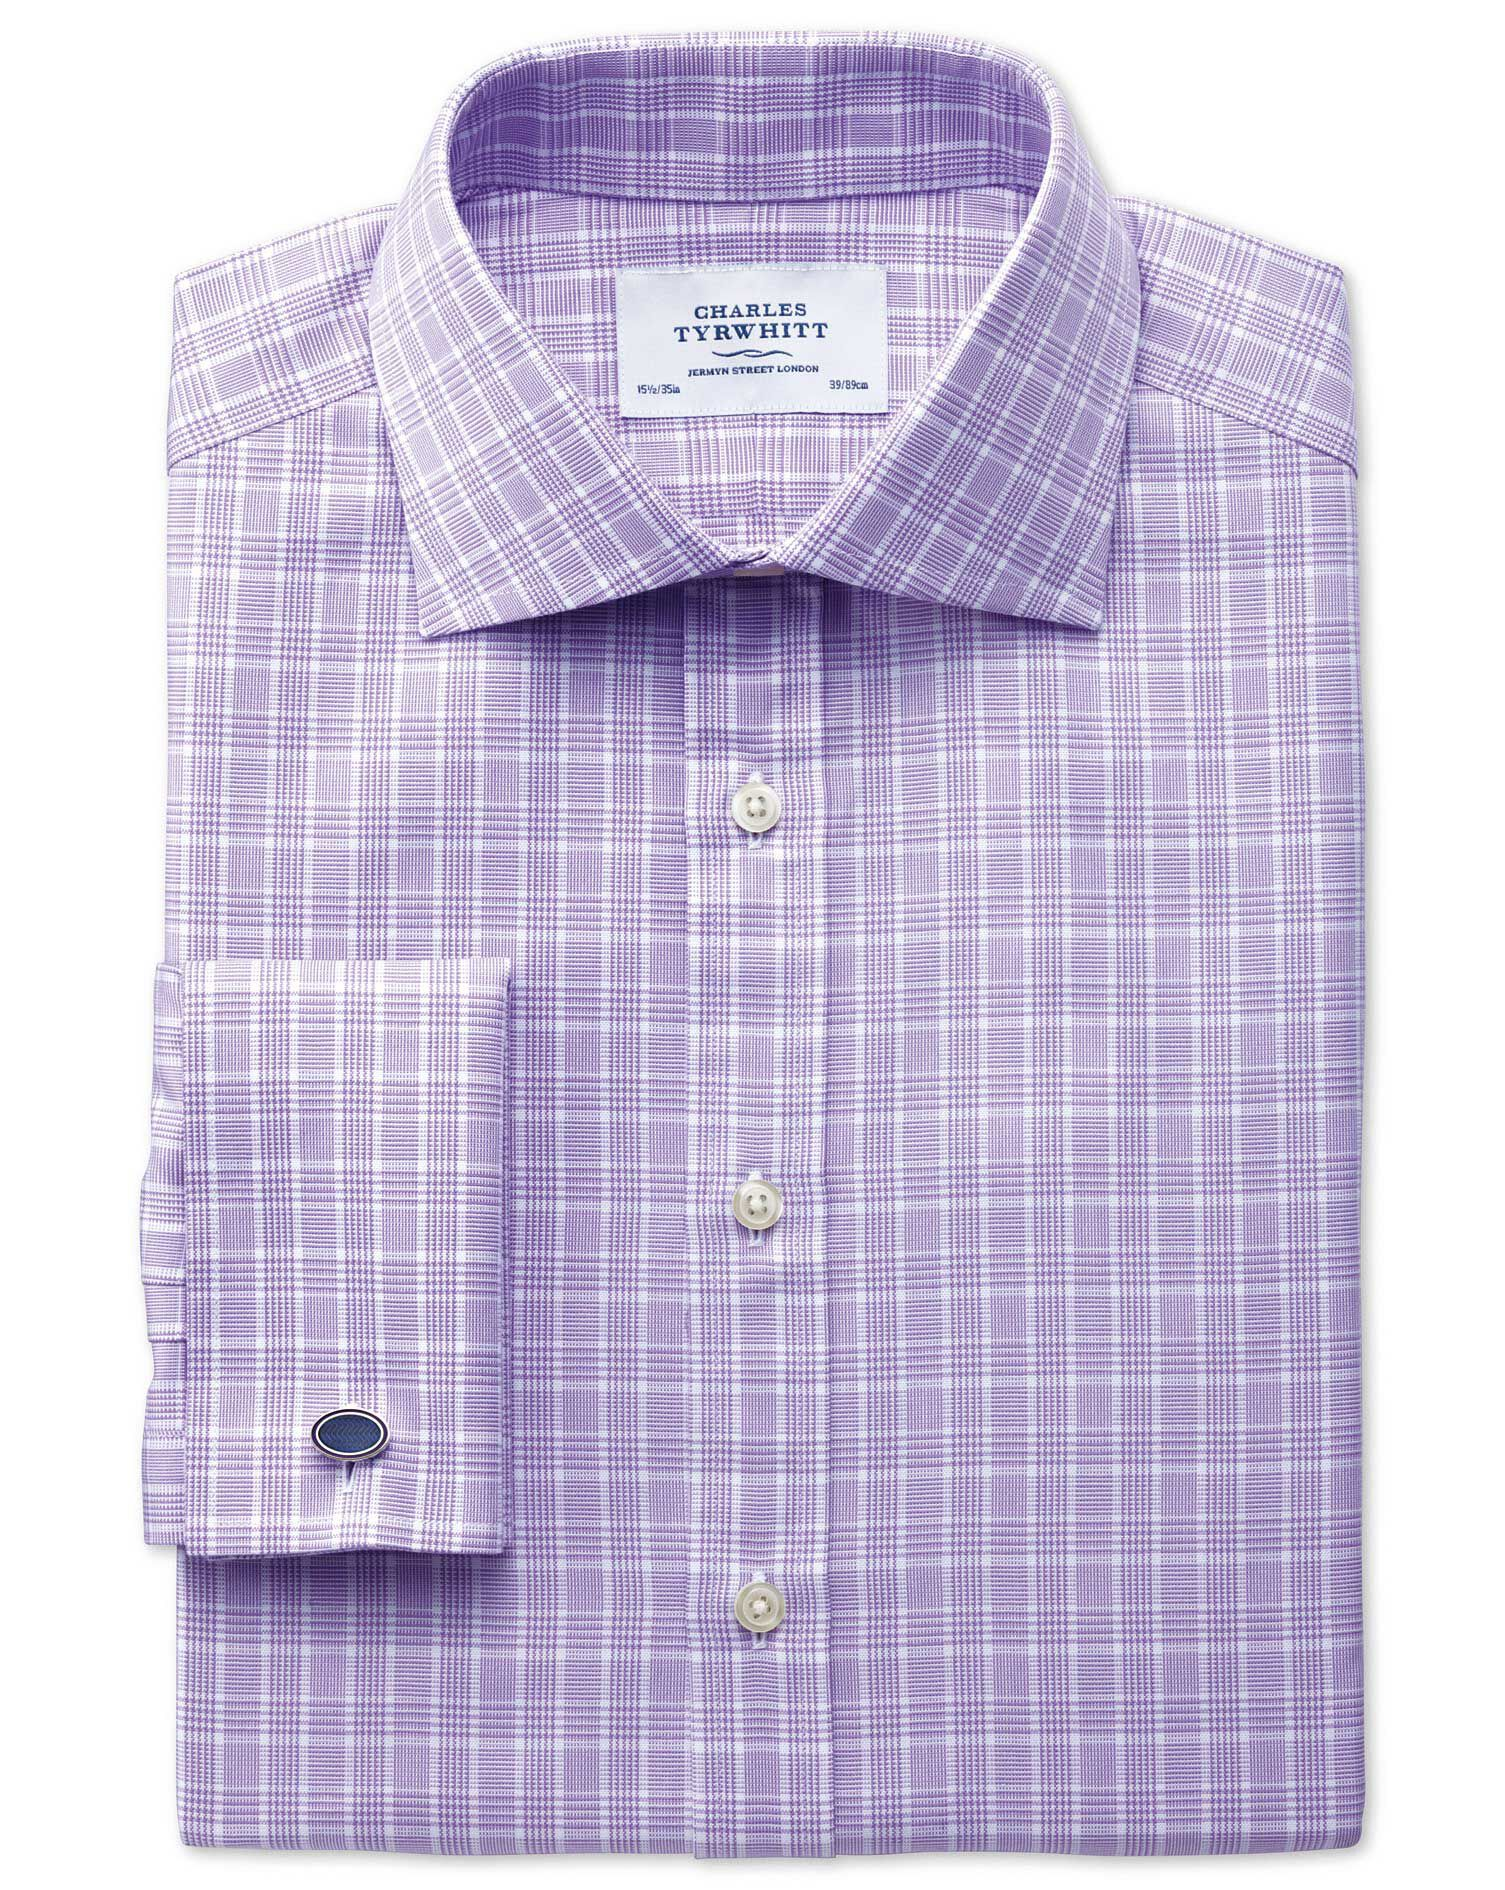 Classic Fit Prince Of Wales Lilac Cotton Formal Shirt Double Cuff Size 15/33 by Charles Tyrwhitt